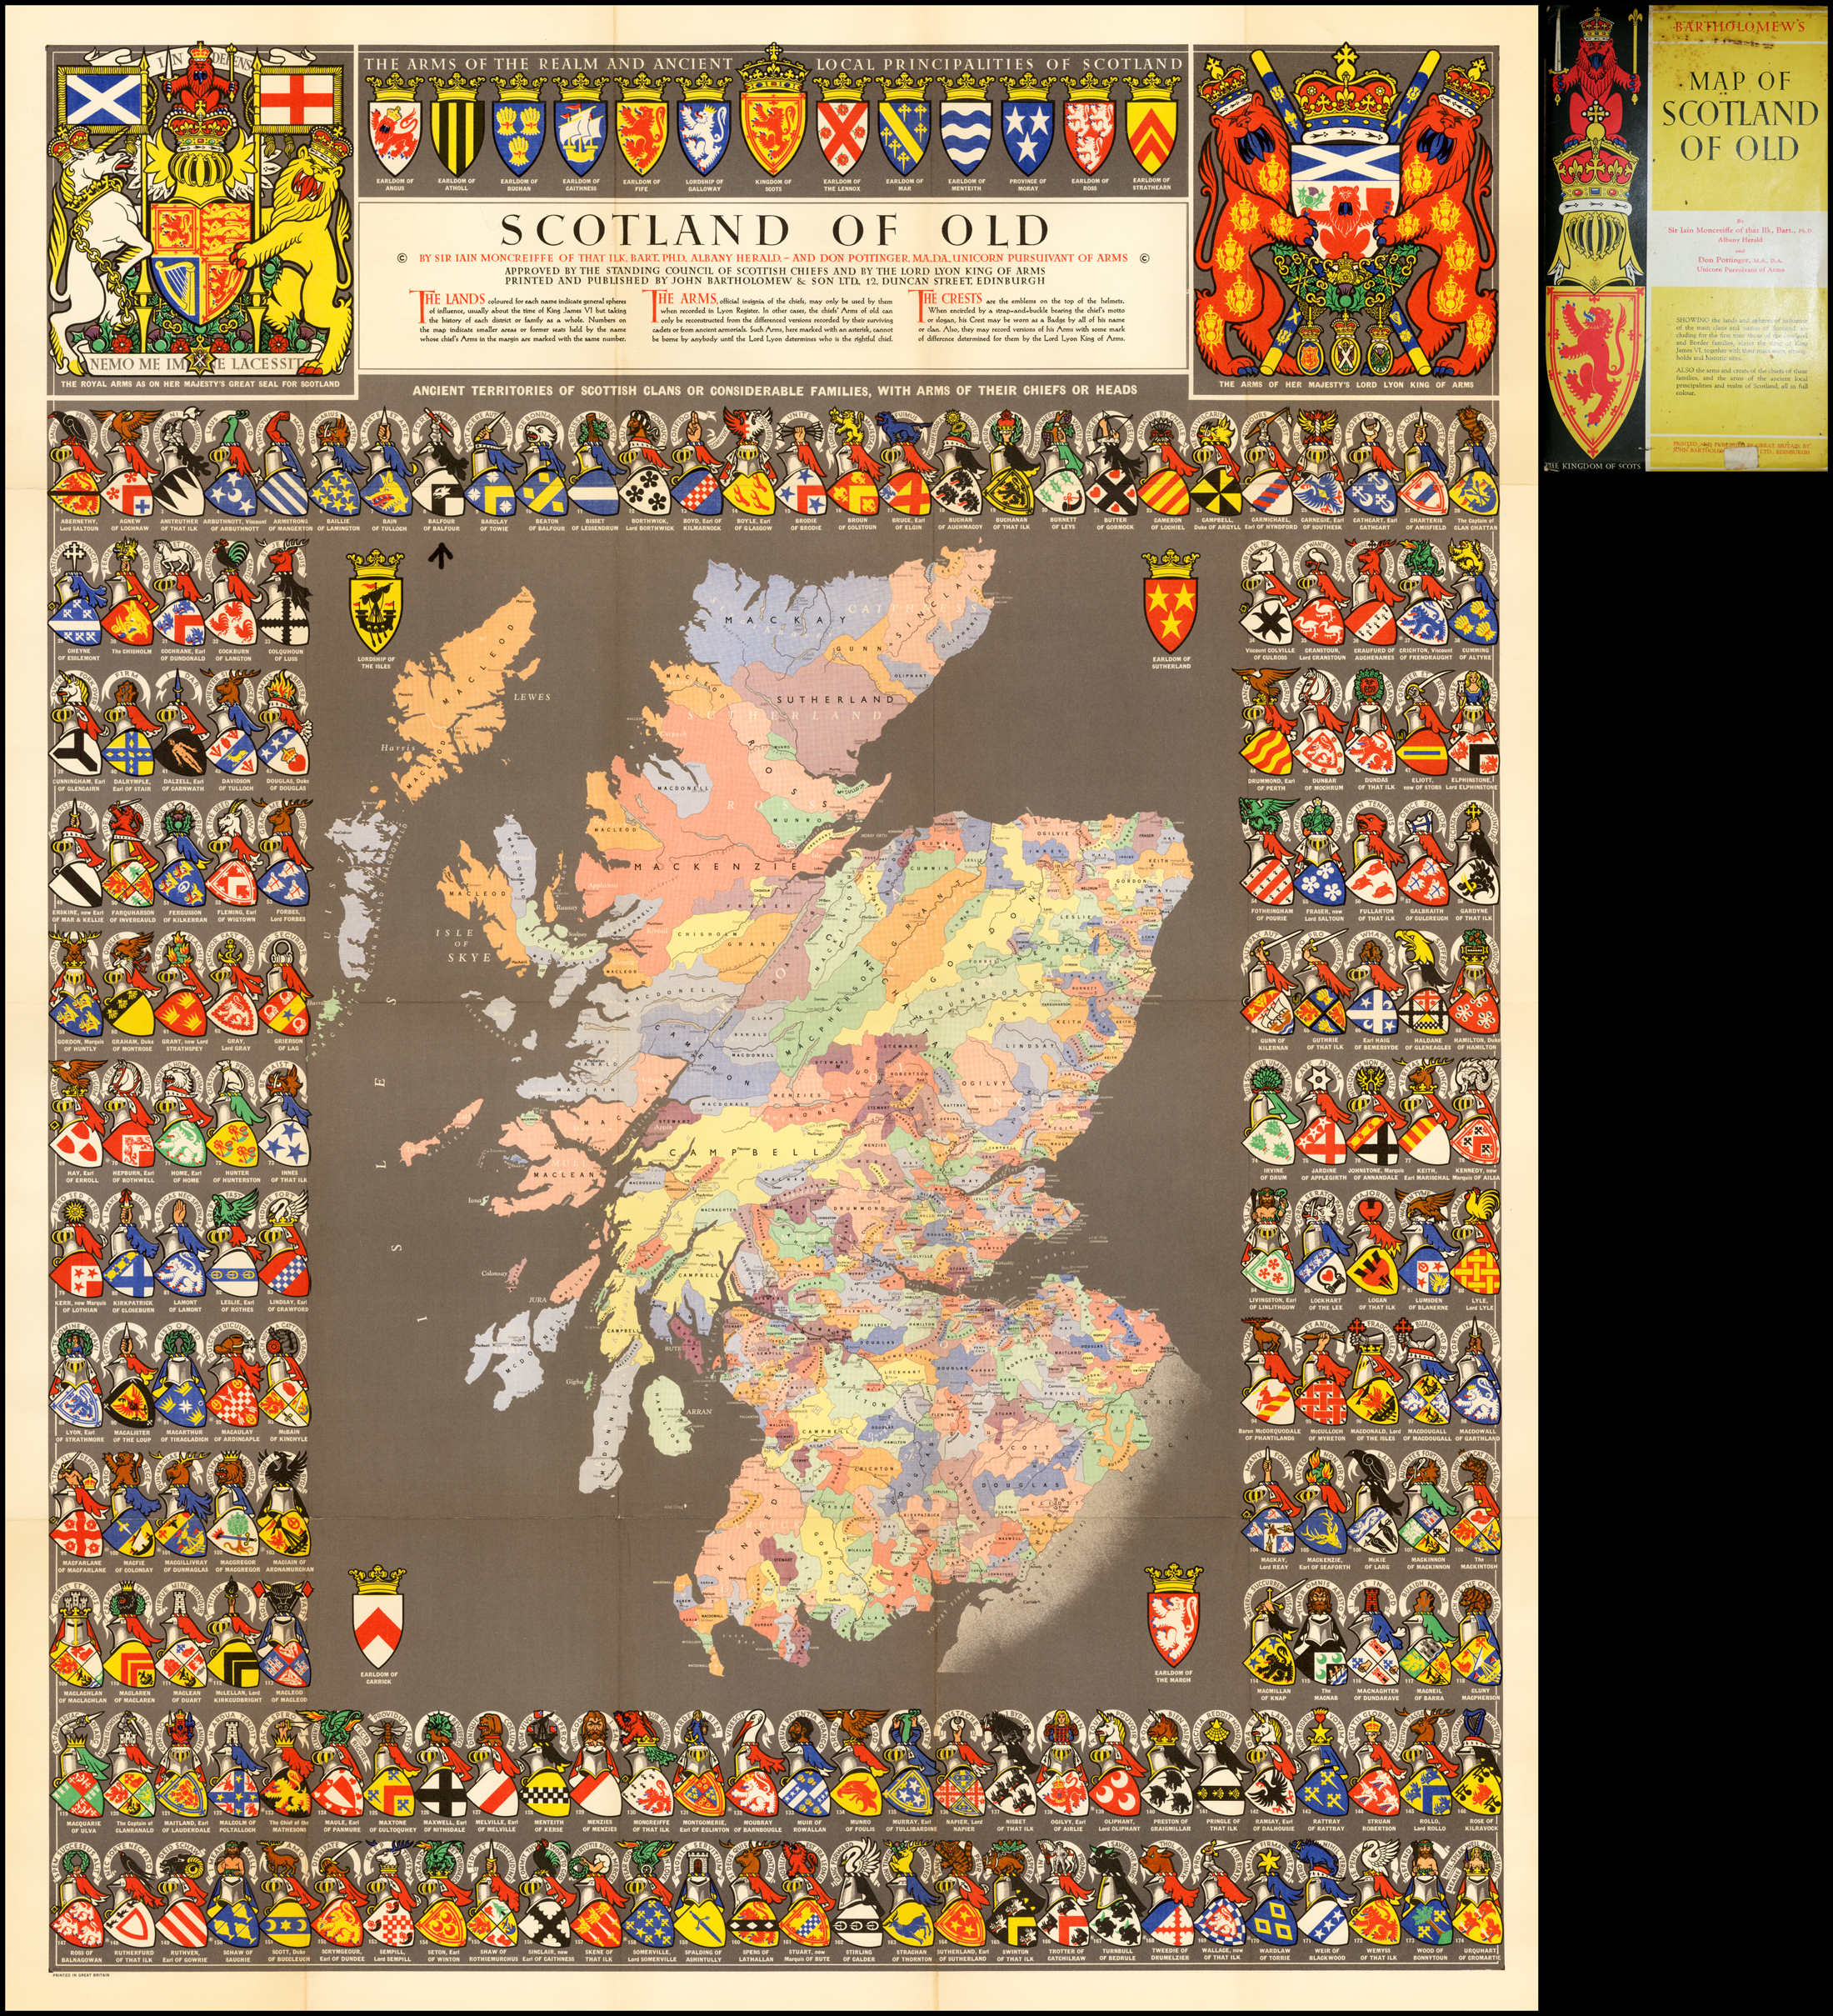 Scotland of Old - Barry Lawrence Ruderman Antique Maps Inc